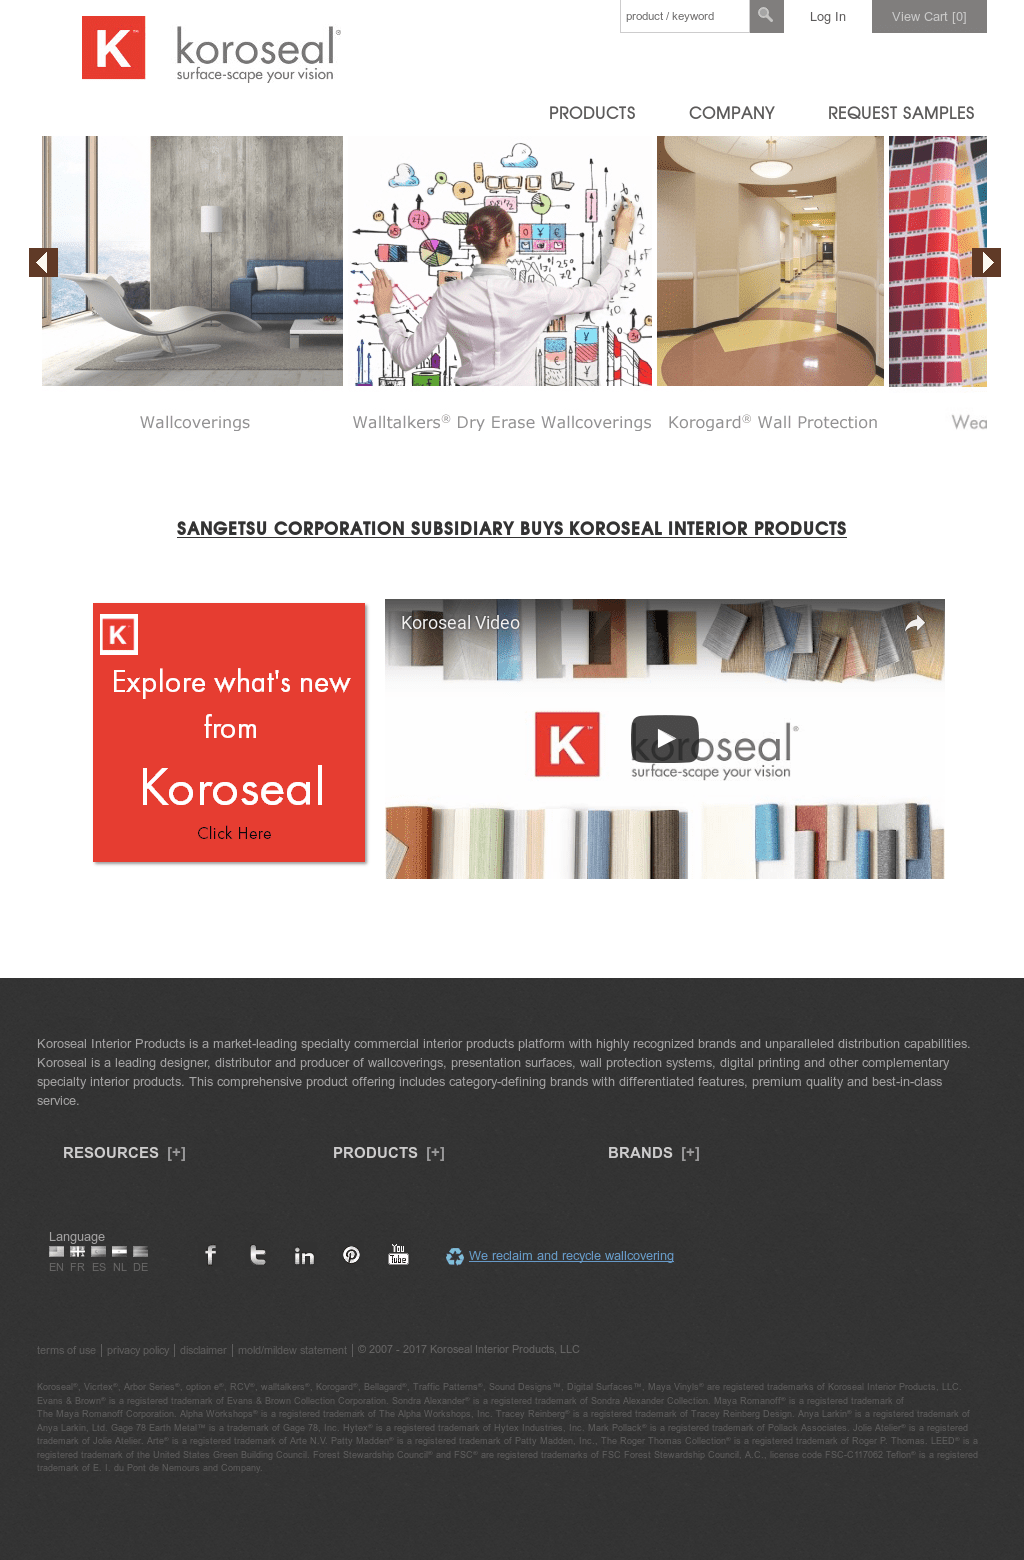 Koroseal Interior Products